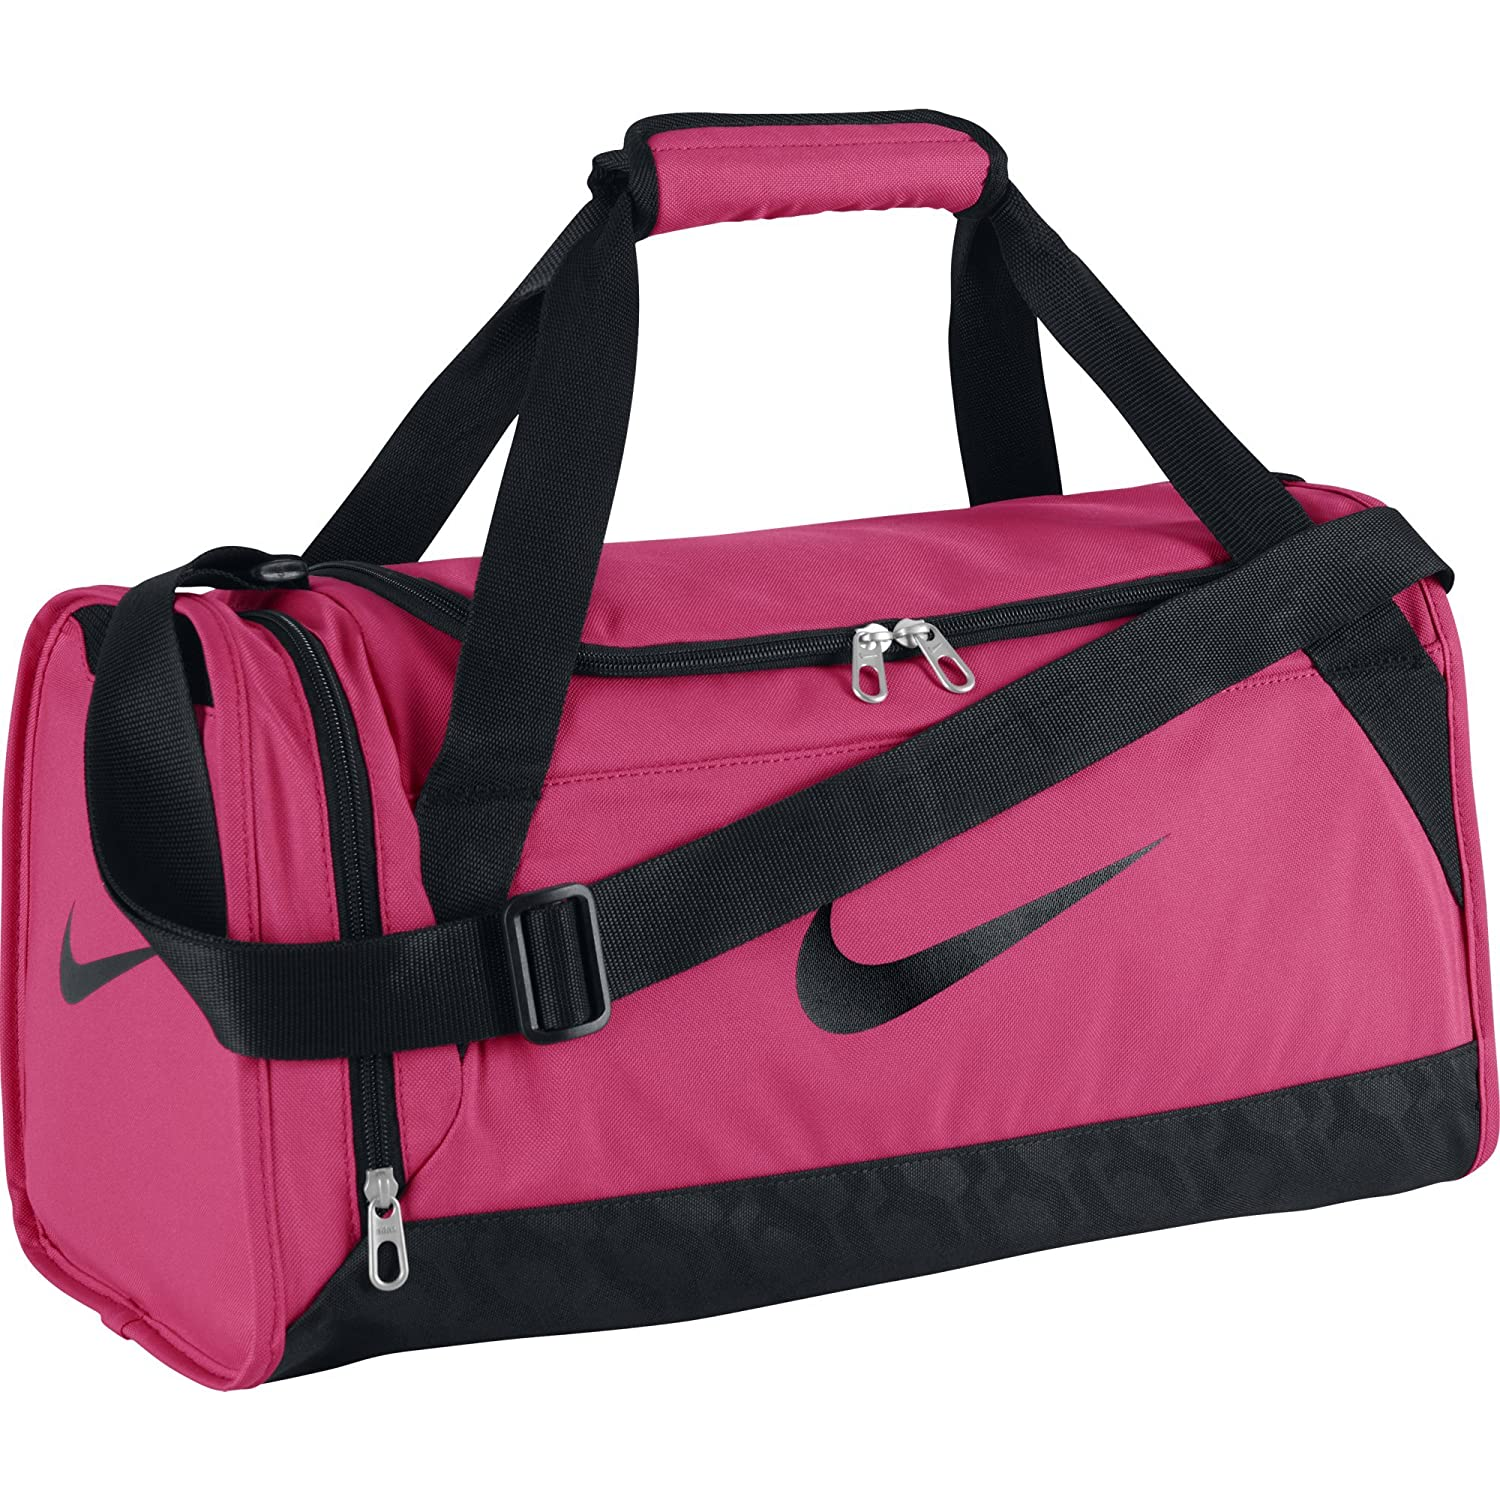 top 10 best duffel gym bags for women 2016 2017 on flipboard. Black Bedroom Furniture Sets. Home Design Ideas